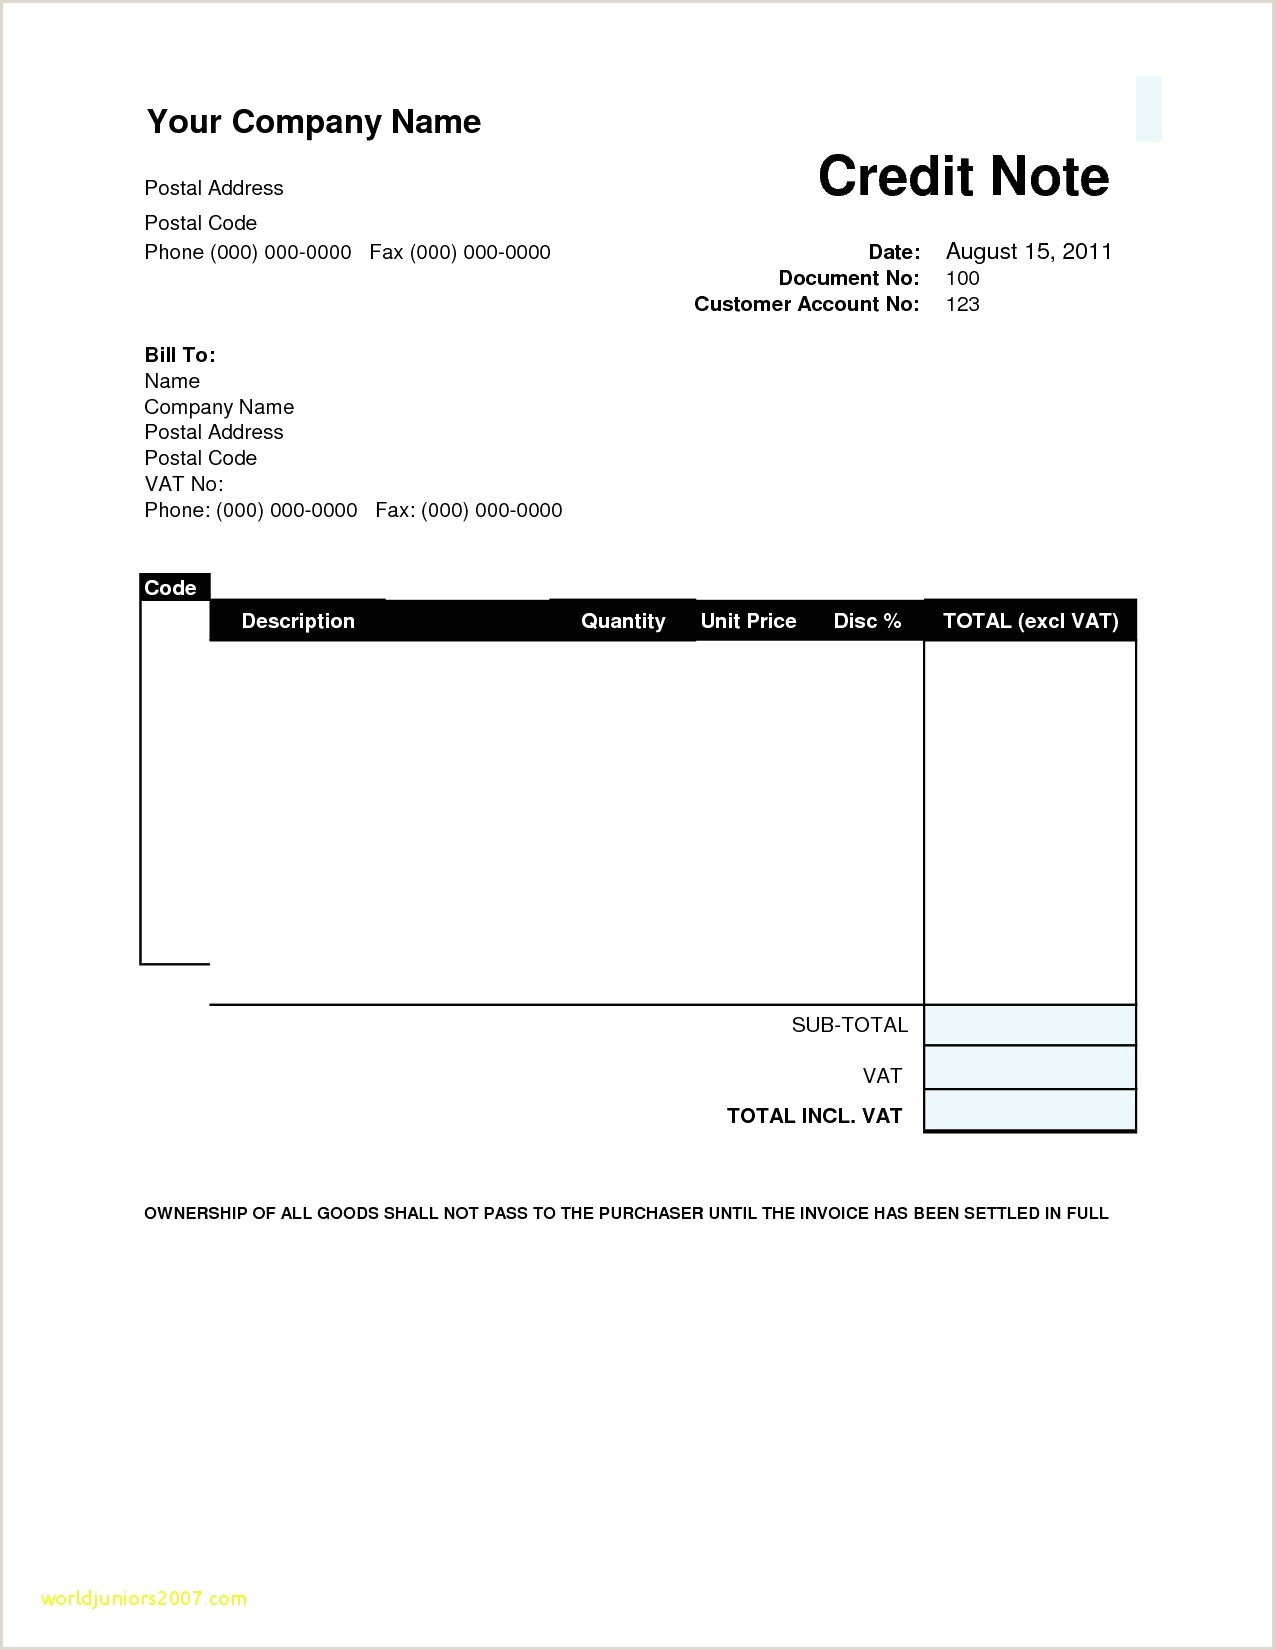 Business Card Contact Info Police Department Business Card Templates